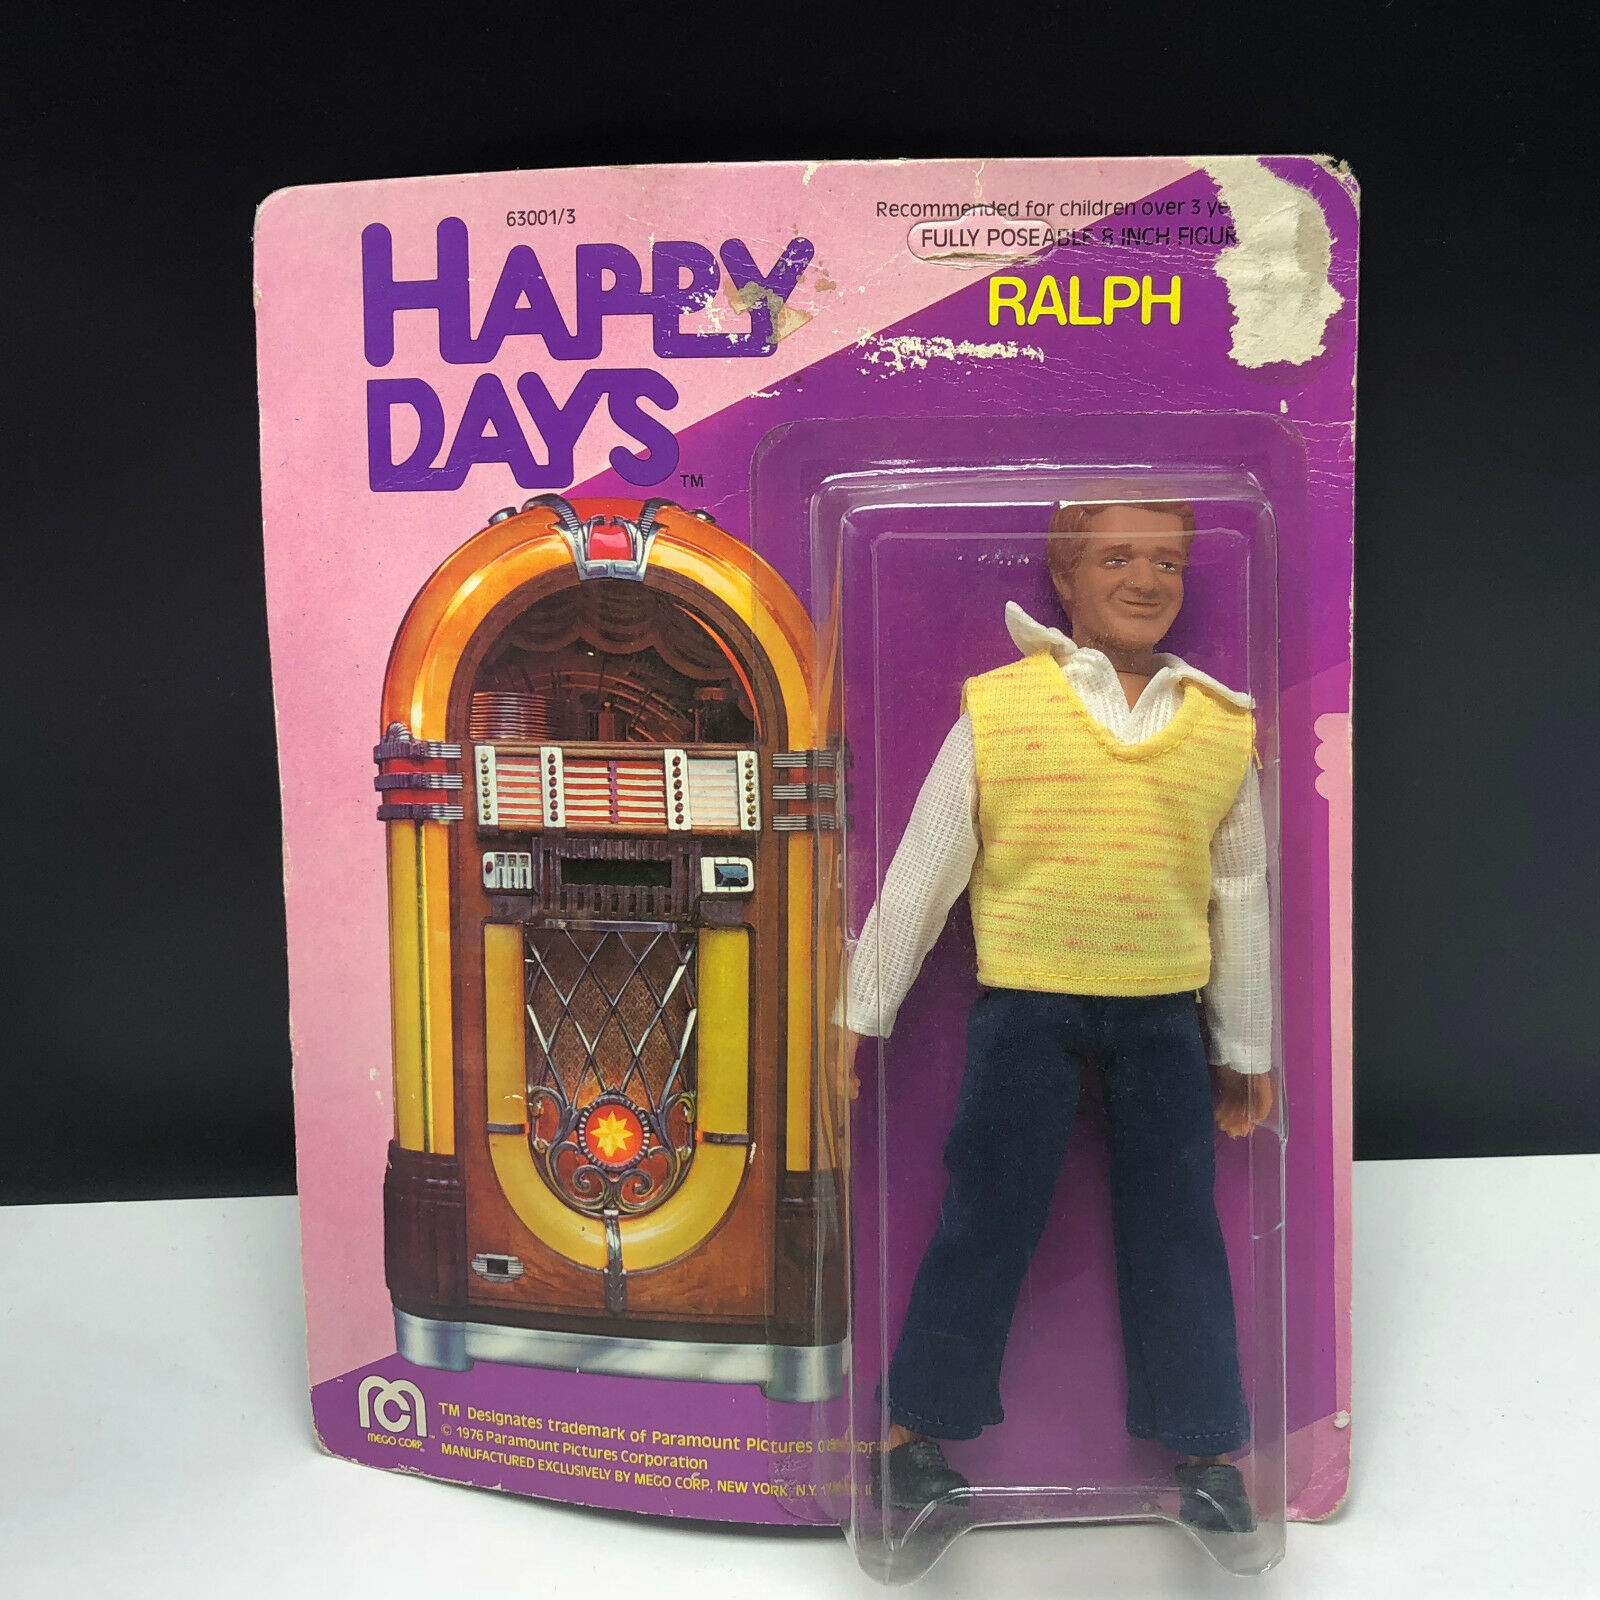 MEGO azione cifra HAPPY DAYS 1976  Ralph Mouth moc sealed giocattolo fonzie gang bambola  outlet online